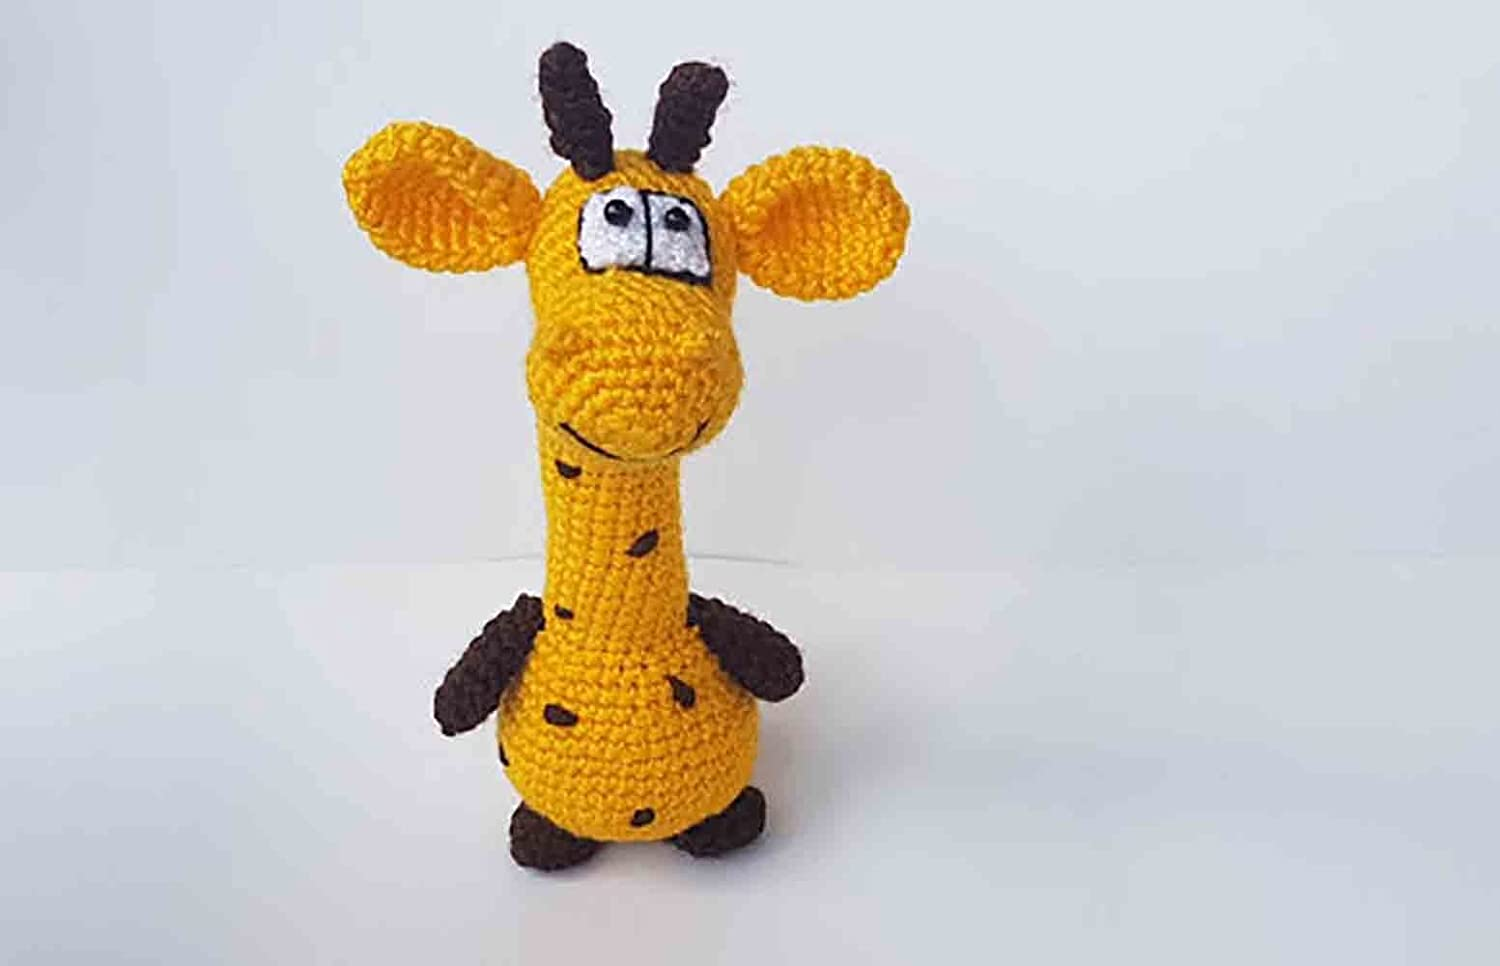 Adorable Amigurumi Crochet Toys (With images) | Stuffed toys ... | 966x1500